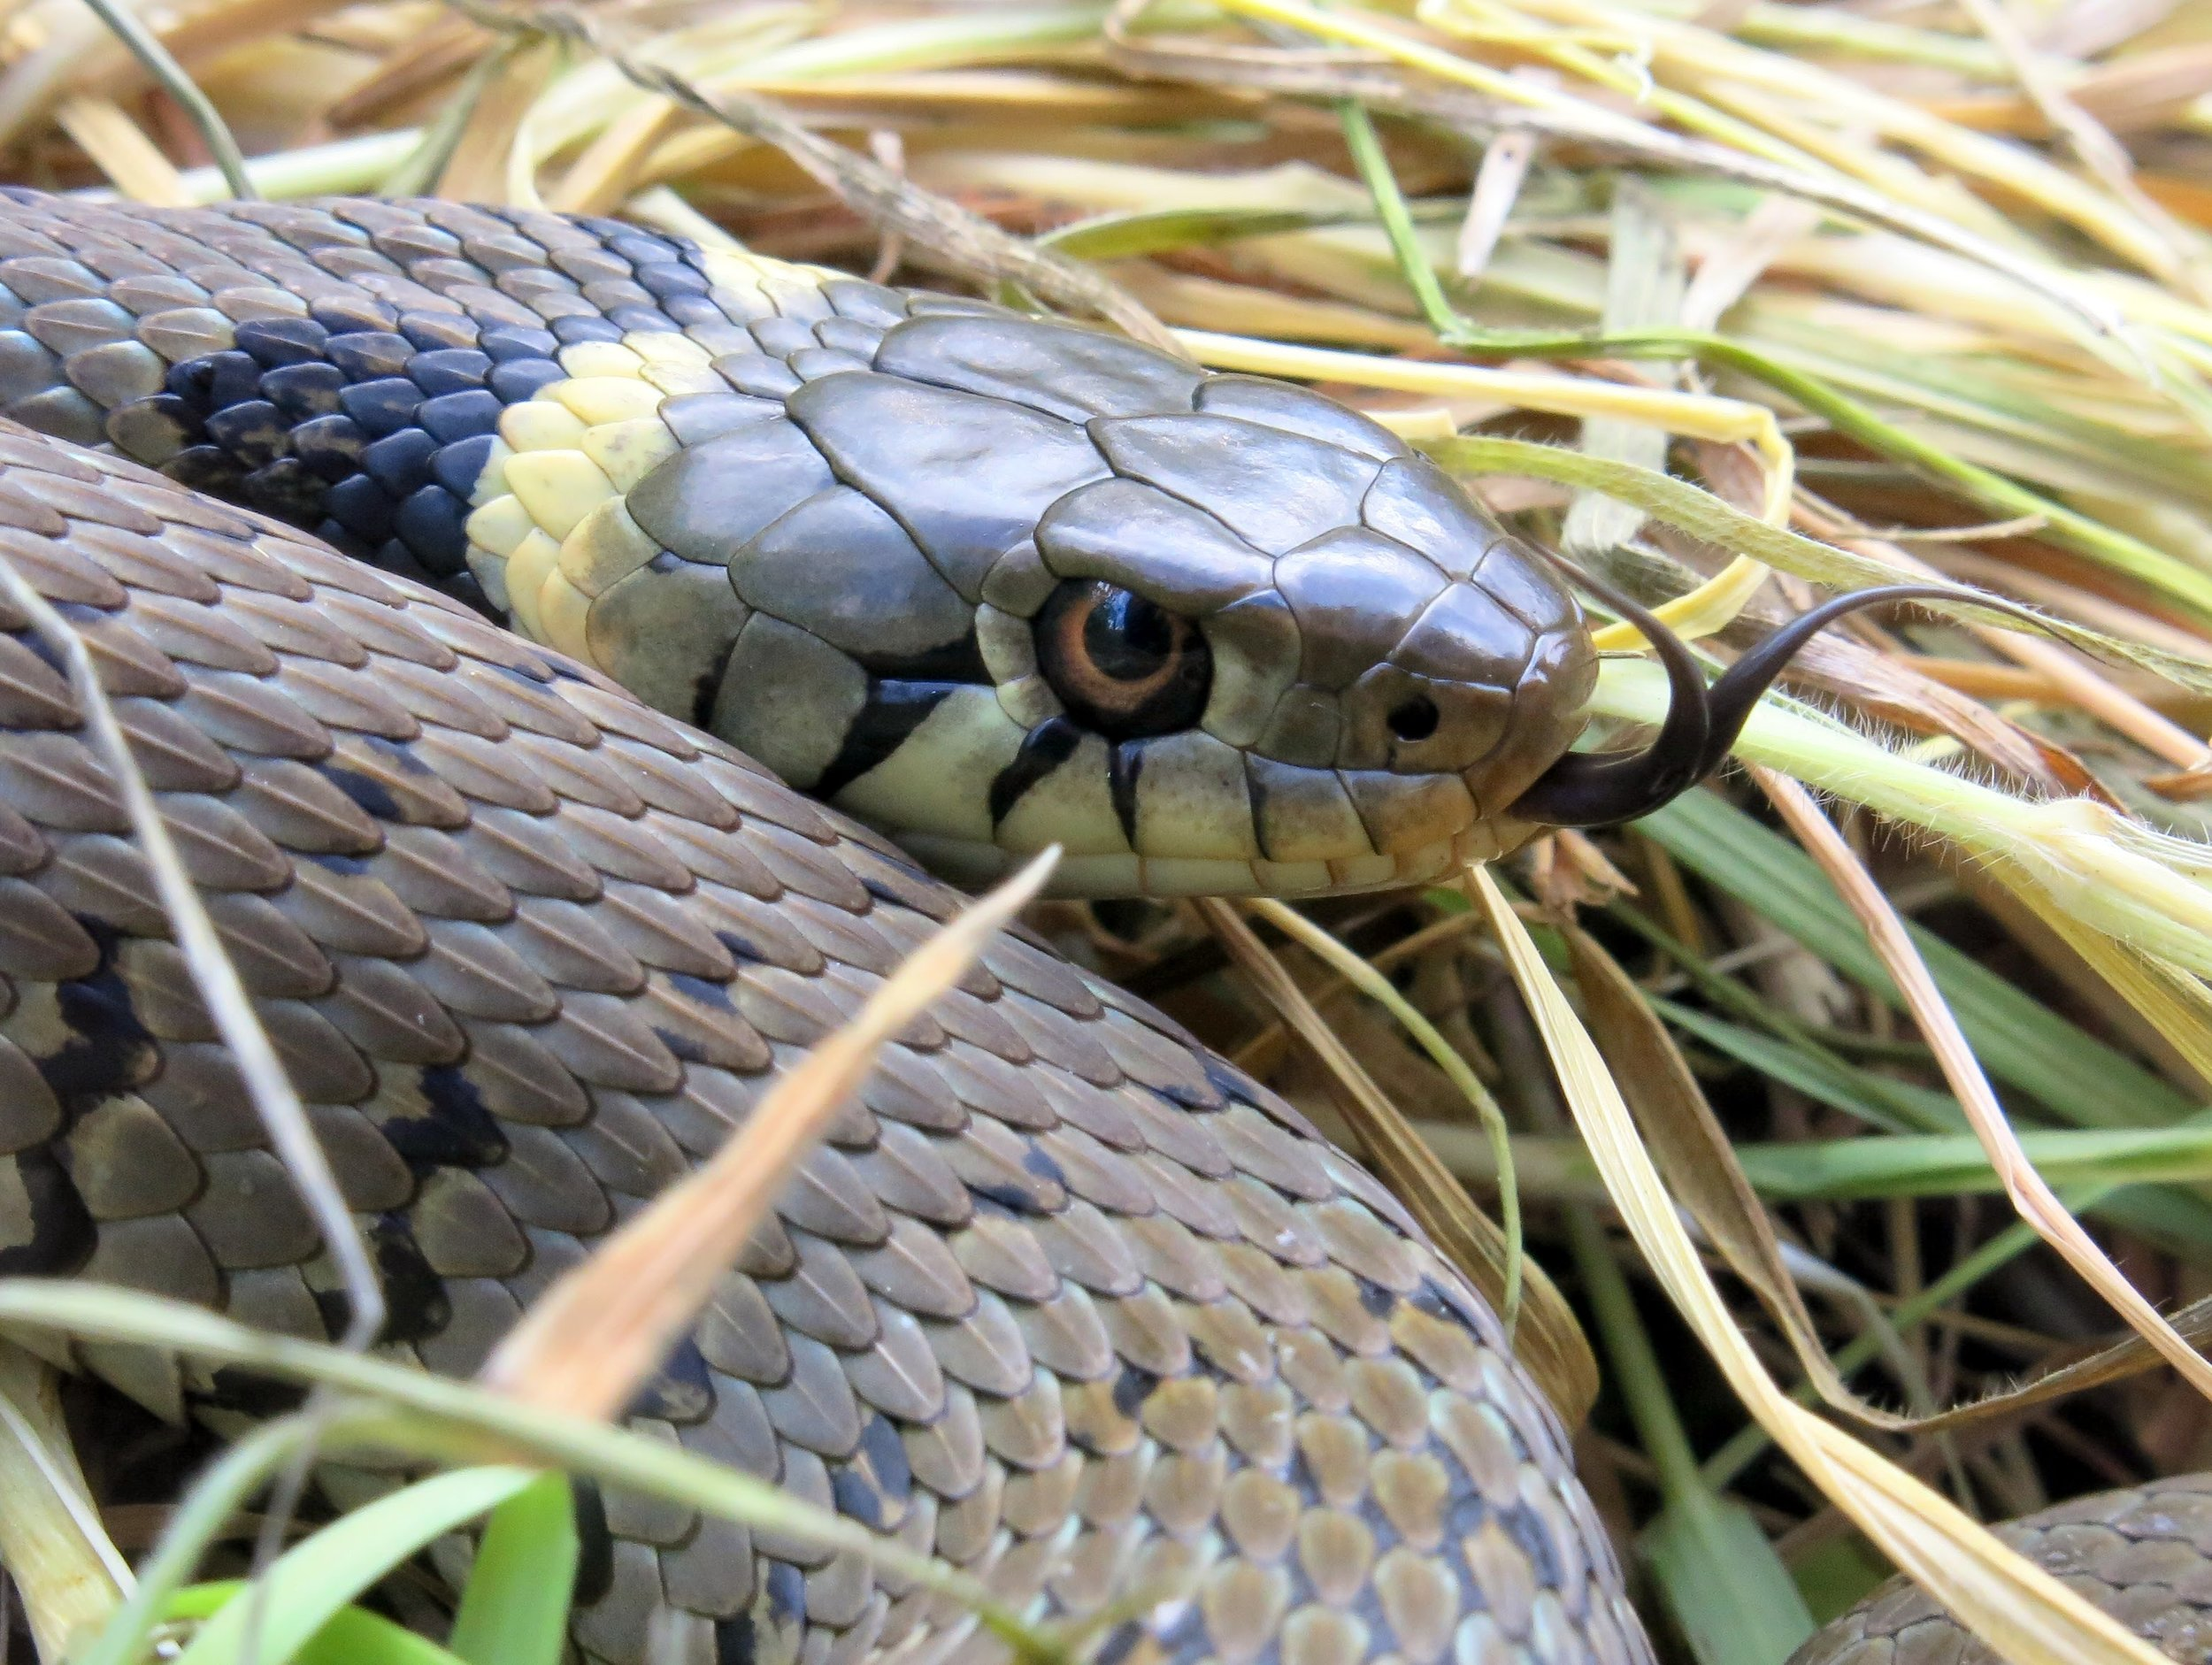 An adult grass snake found beneath a refugia during on of LSC's reptile surveys in the West Midlands.